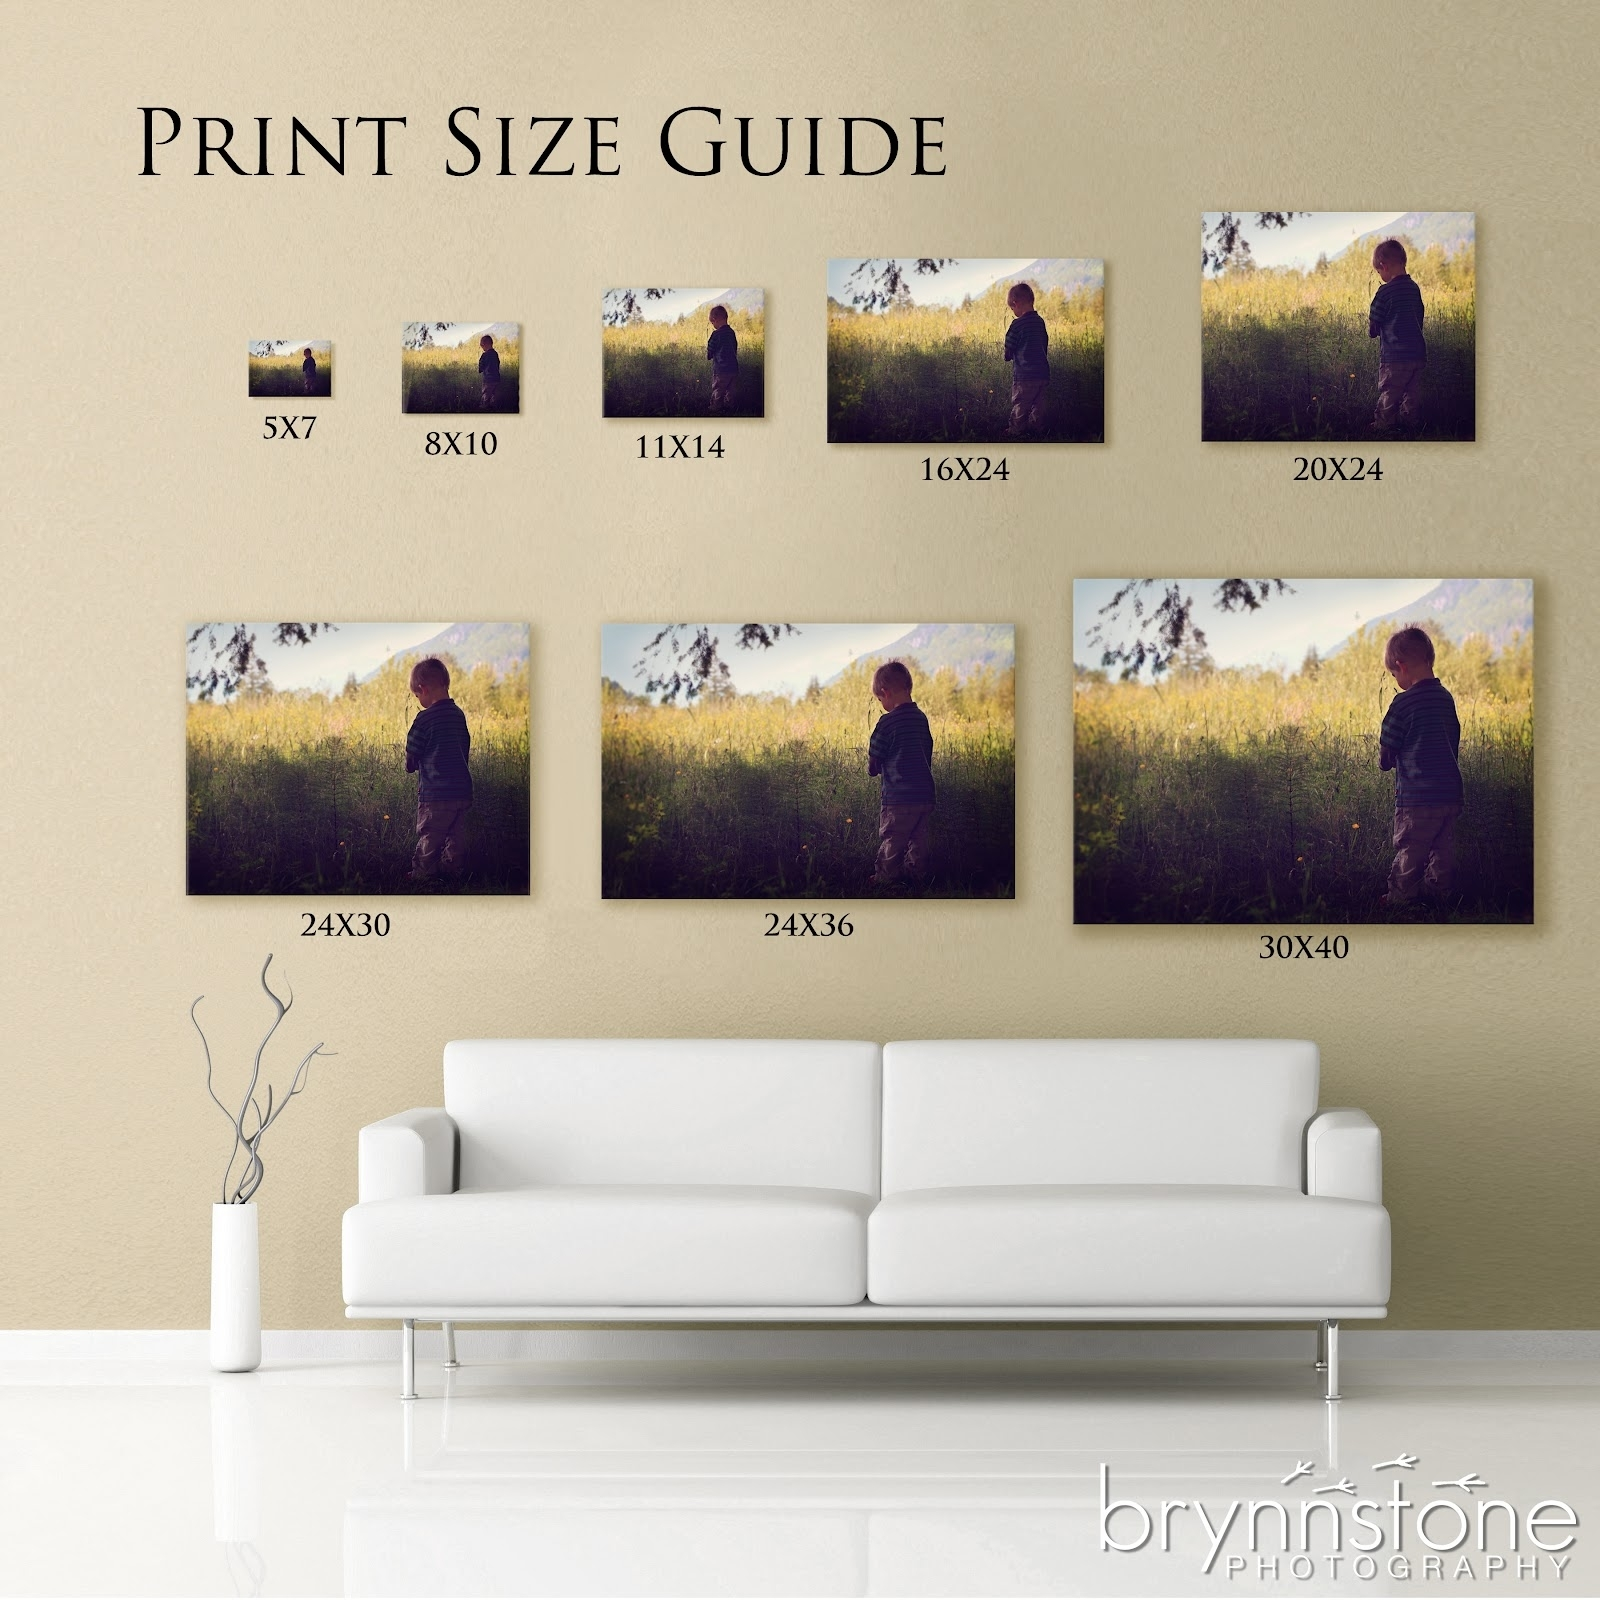 Think An 8X10 Is A Big Enough Print? They're Not As Big As You Intended For Most Recent Big W Canvas Wall Art (View 9 of 15)